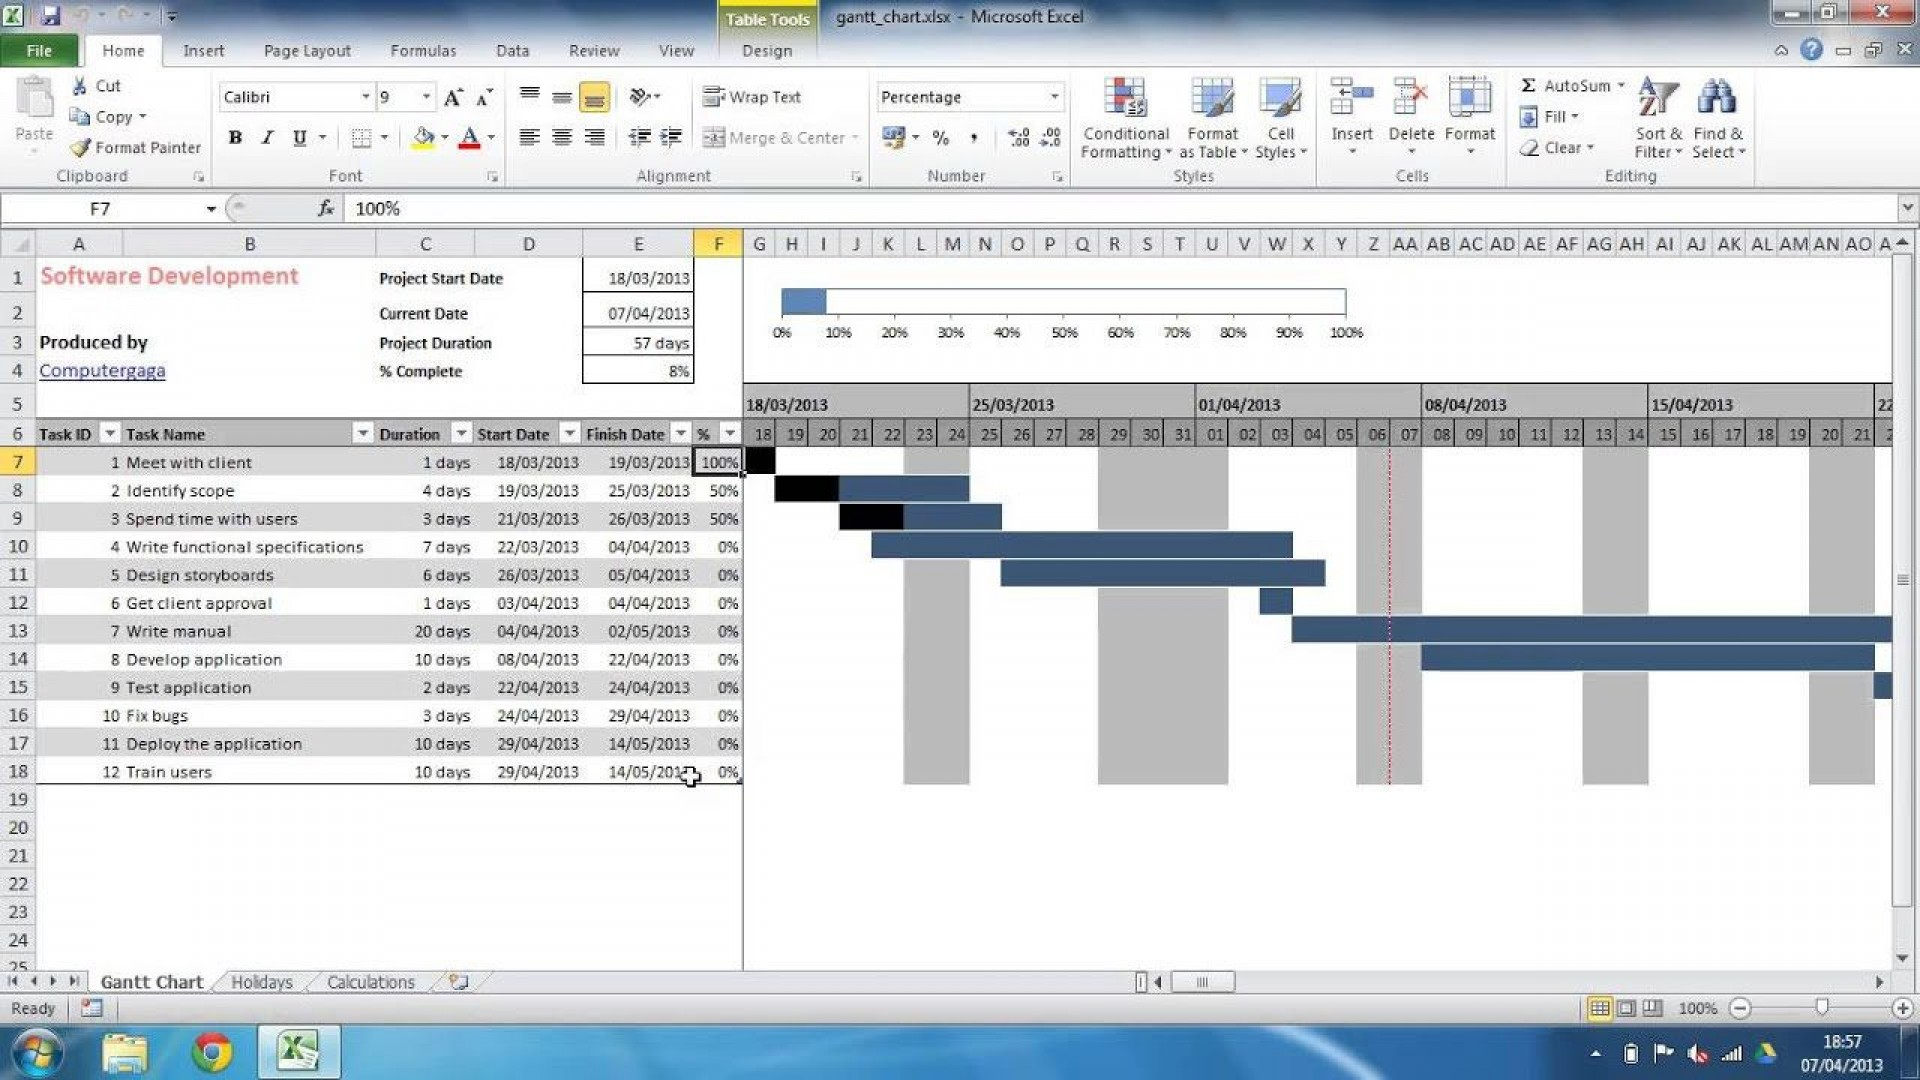 009 Phenomenal Microsoft Excel Gantt Chart Template Image  Project Planner In Simple Free Download1920